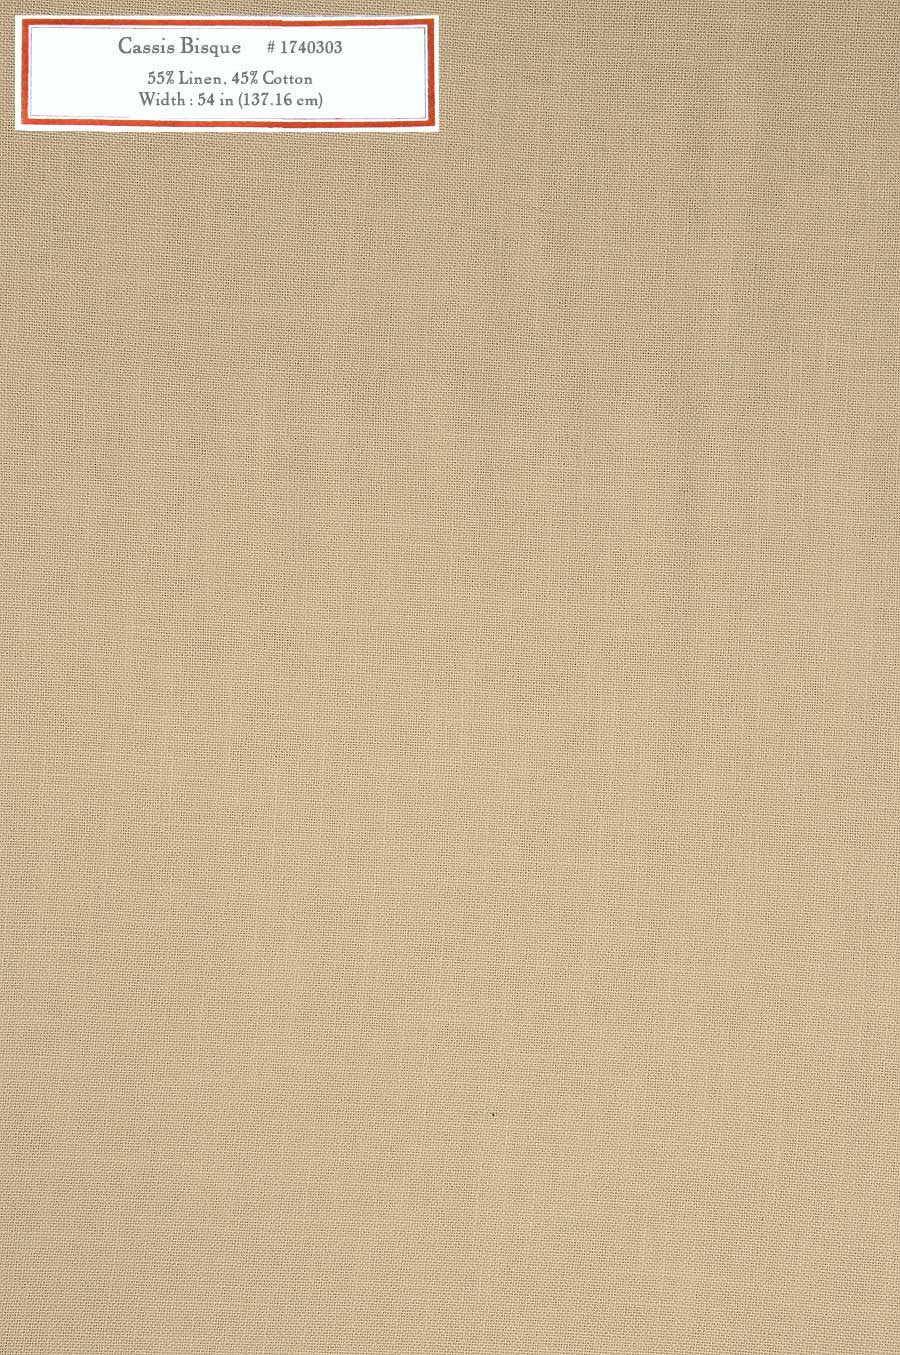 Home Decorative Fabric - Cassis Bisque